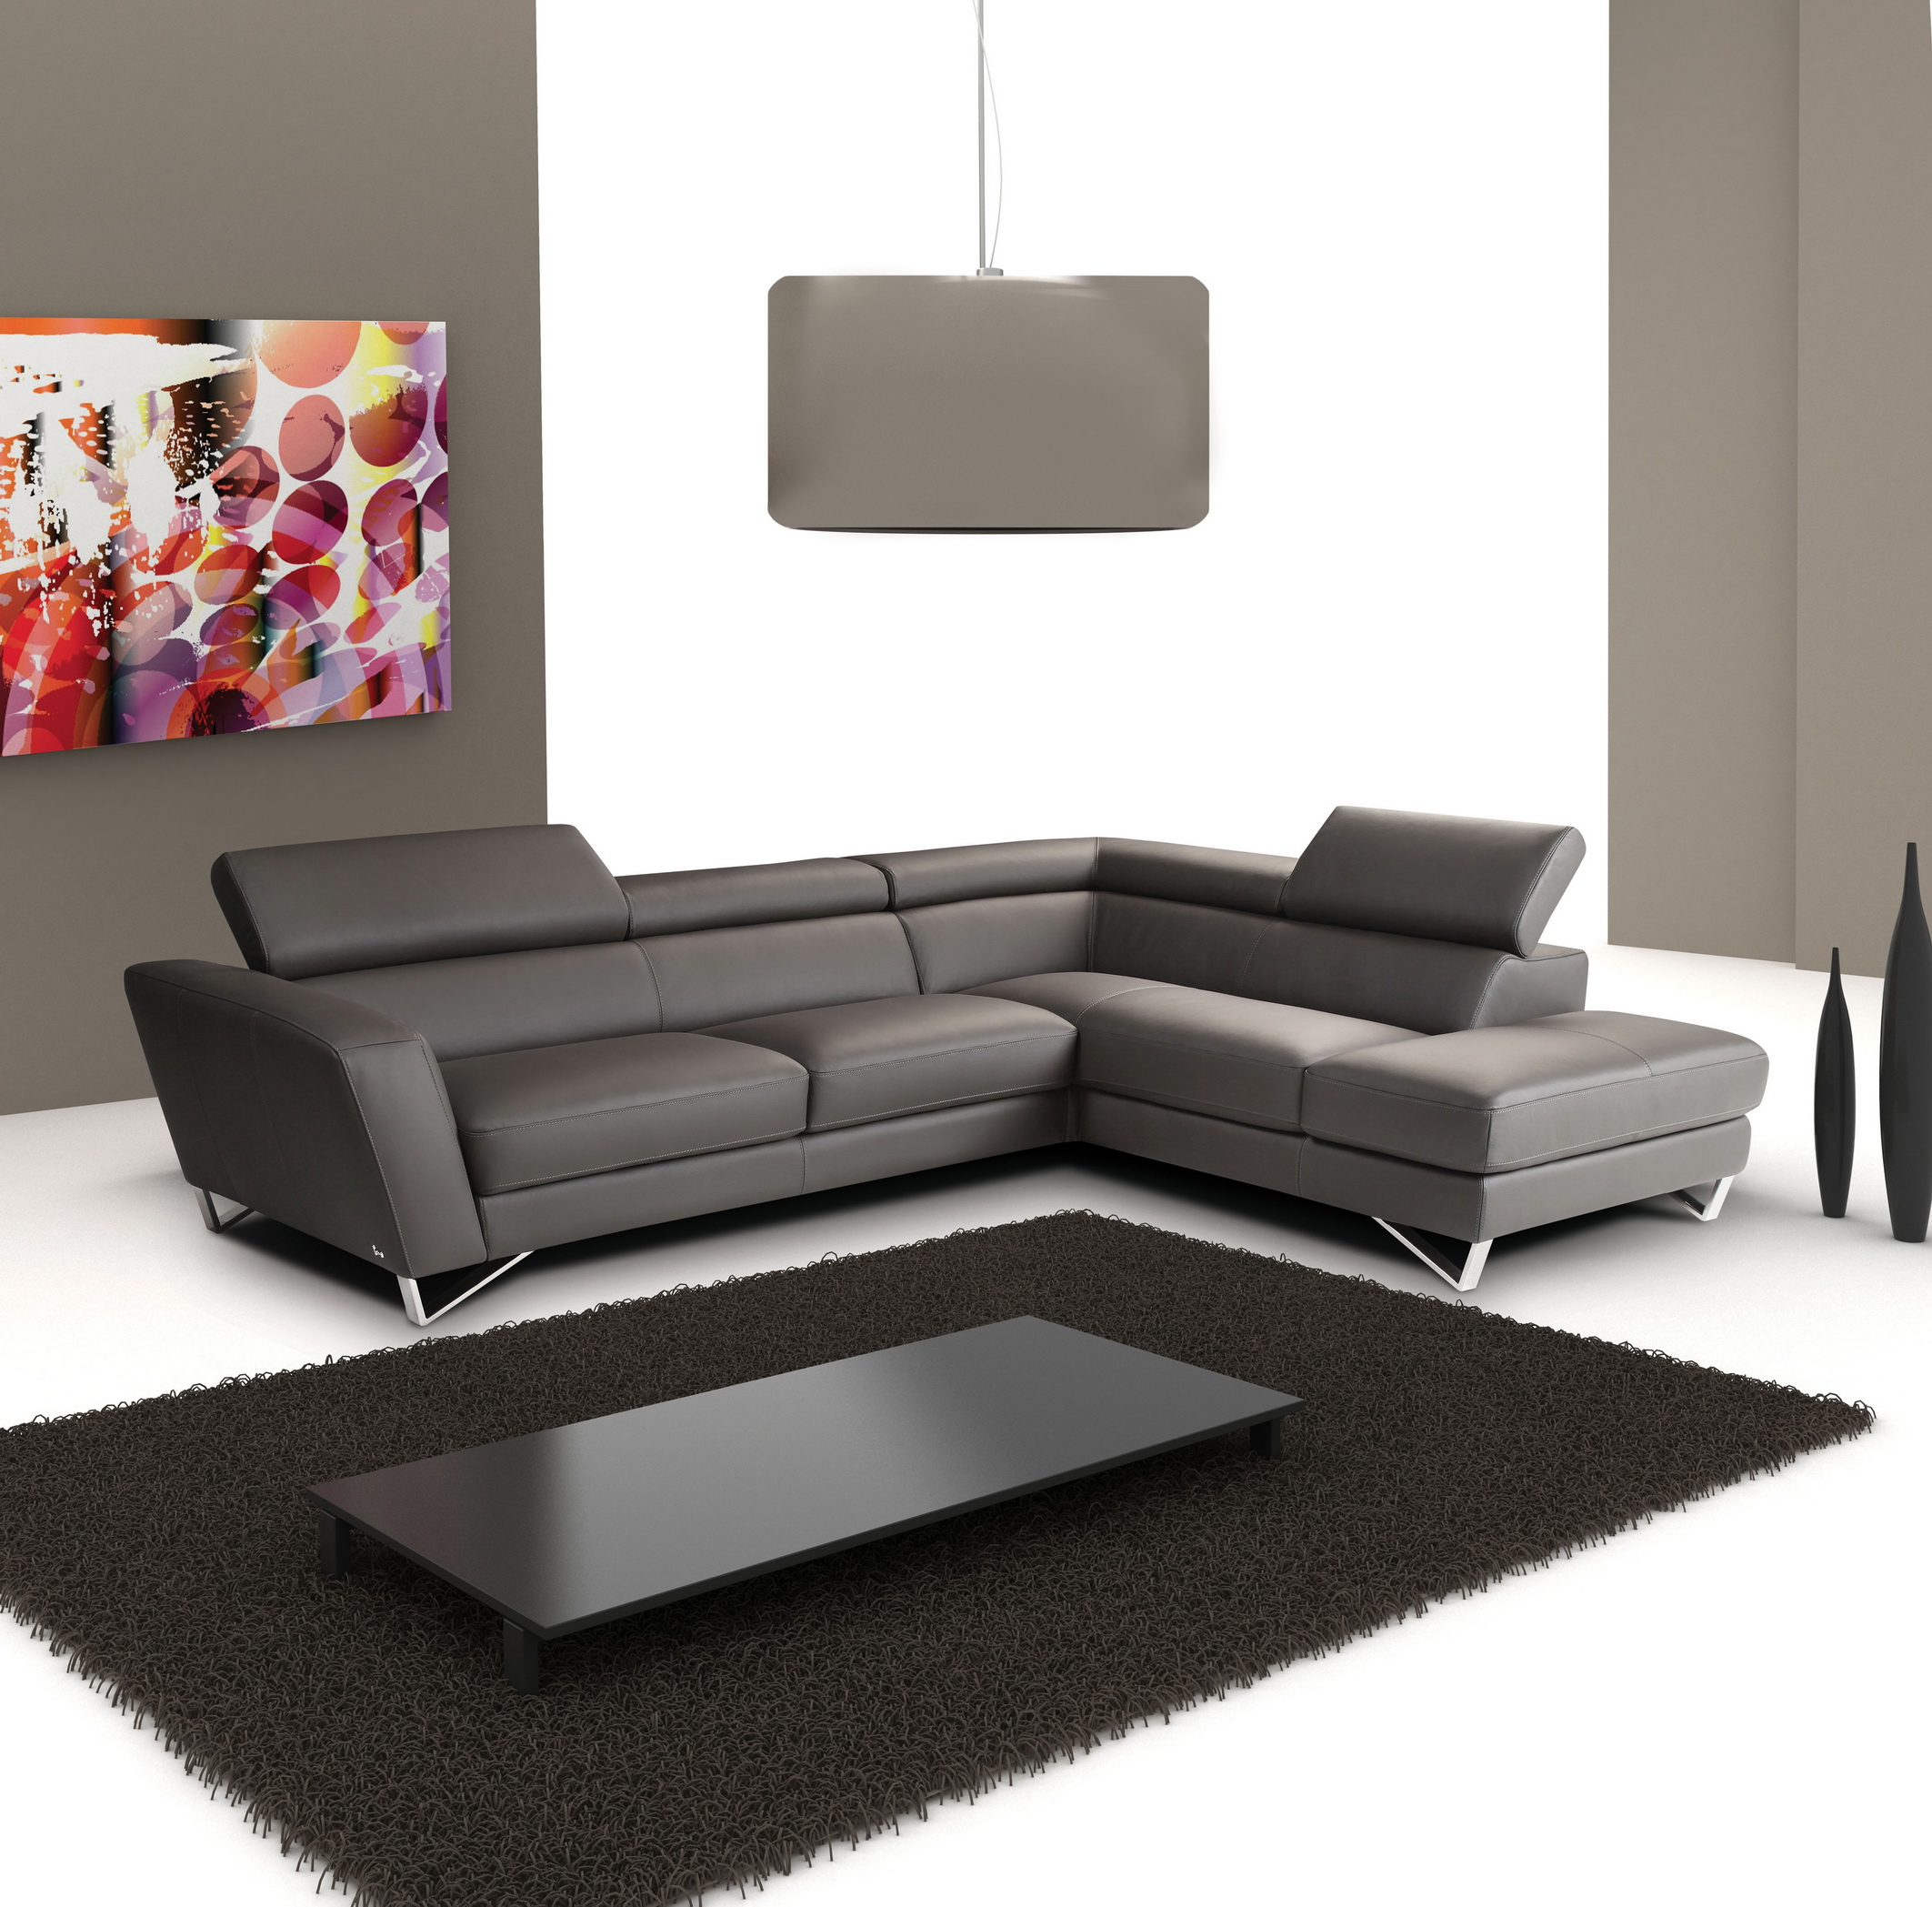 Best sectional couches for sale with cushions and stainless steel legs for home furniture ideas with cheap sectional couches for sale